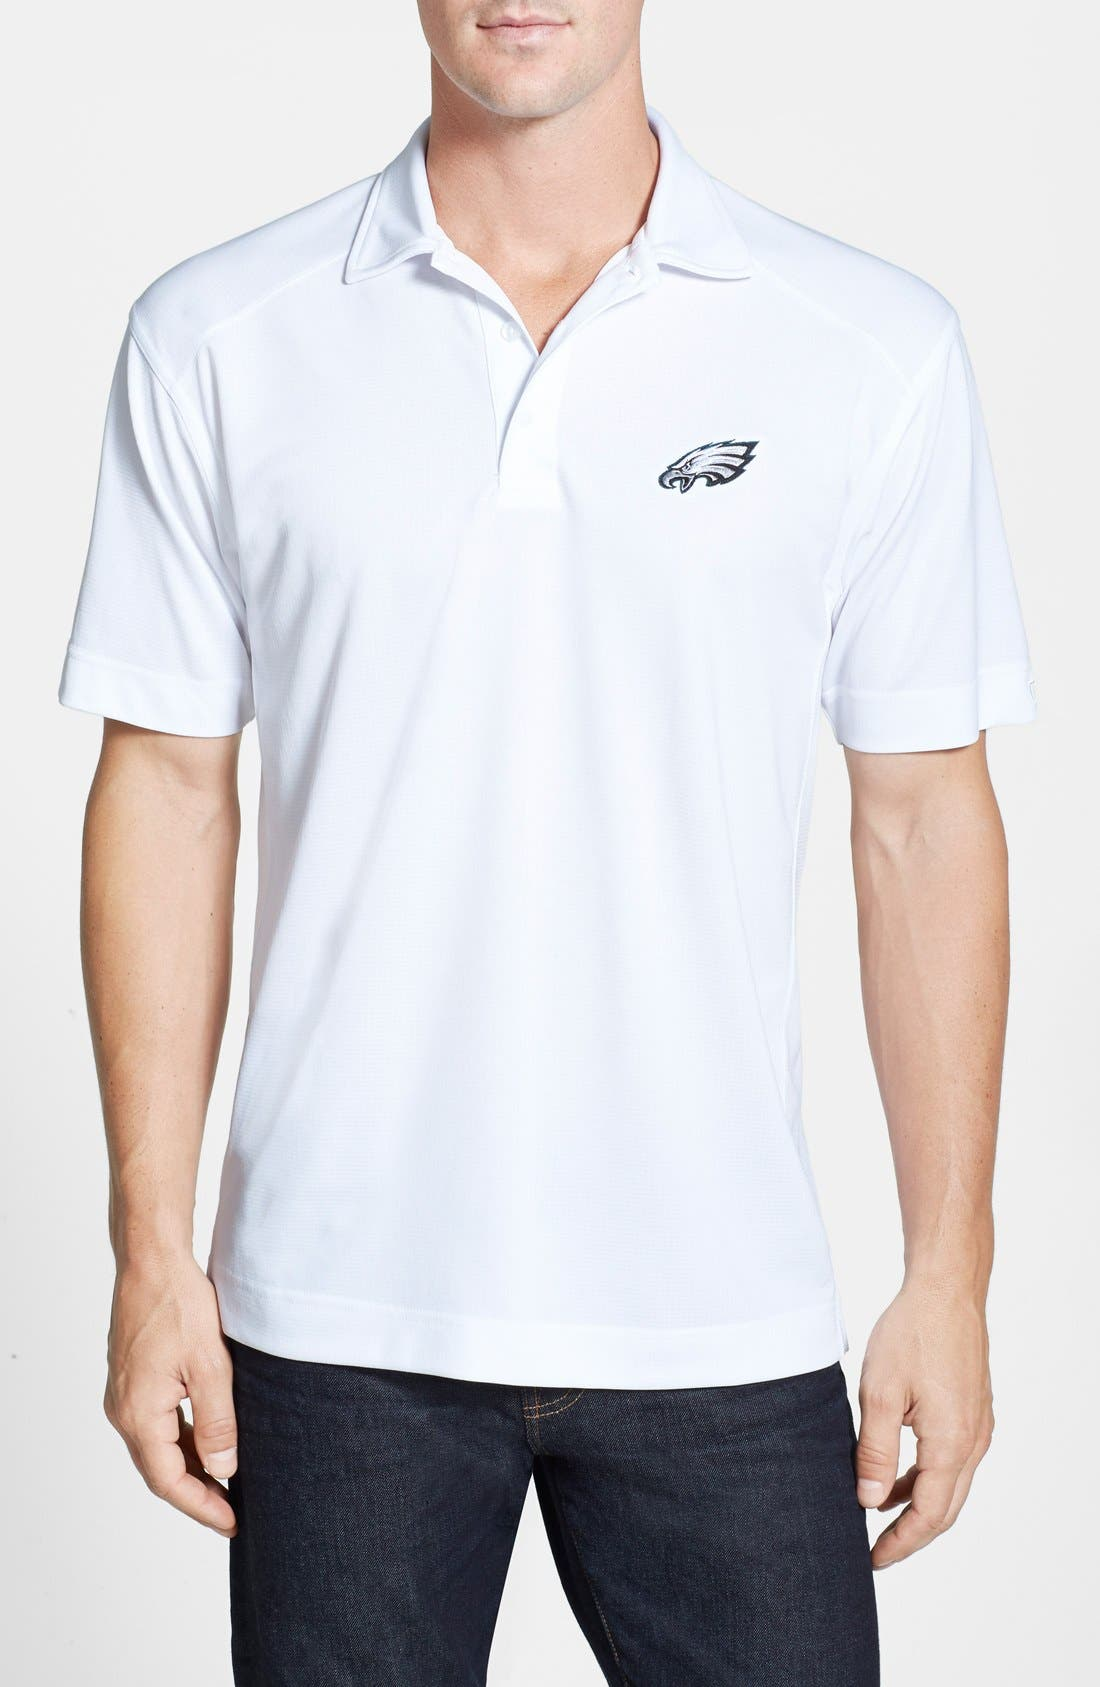 Alternate Image 1 Selected - Cutter & Buck Philadelphia Eagles - Genre DryTec Moisture Wicking Polo